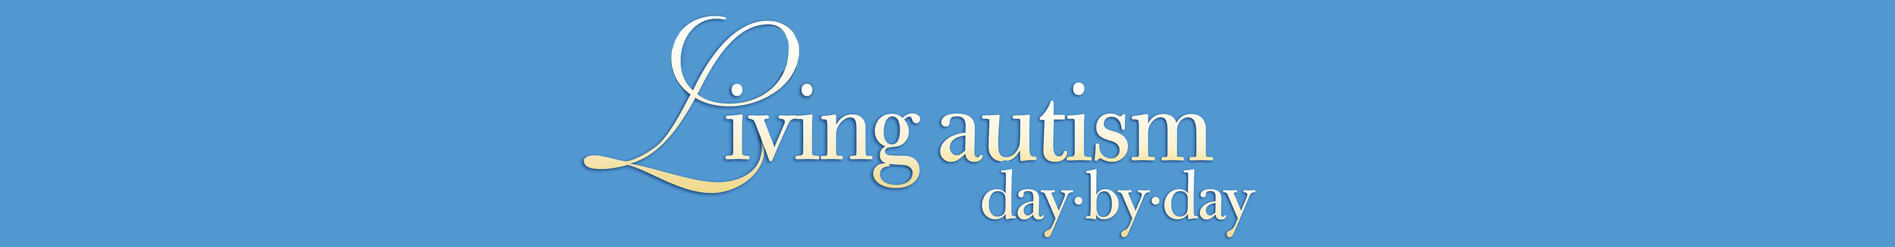 Living Autism Day-by-day Pamela Bryson-Weaver